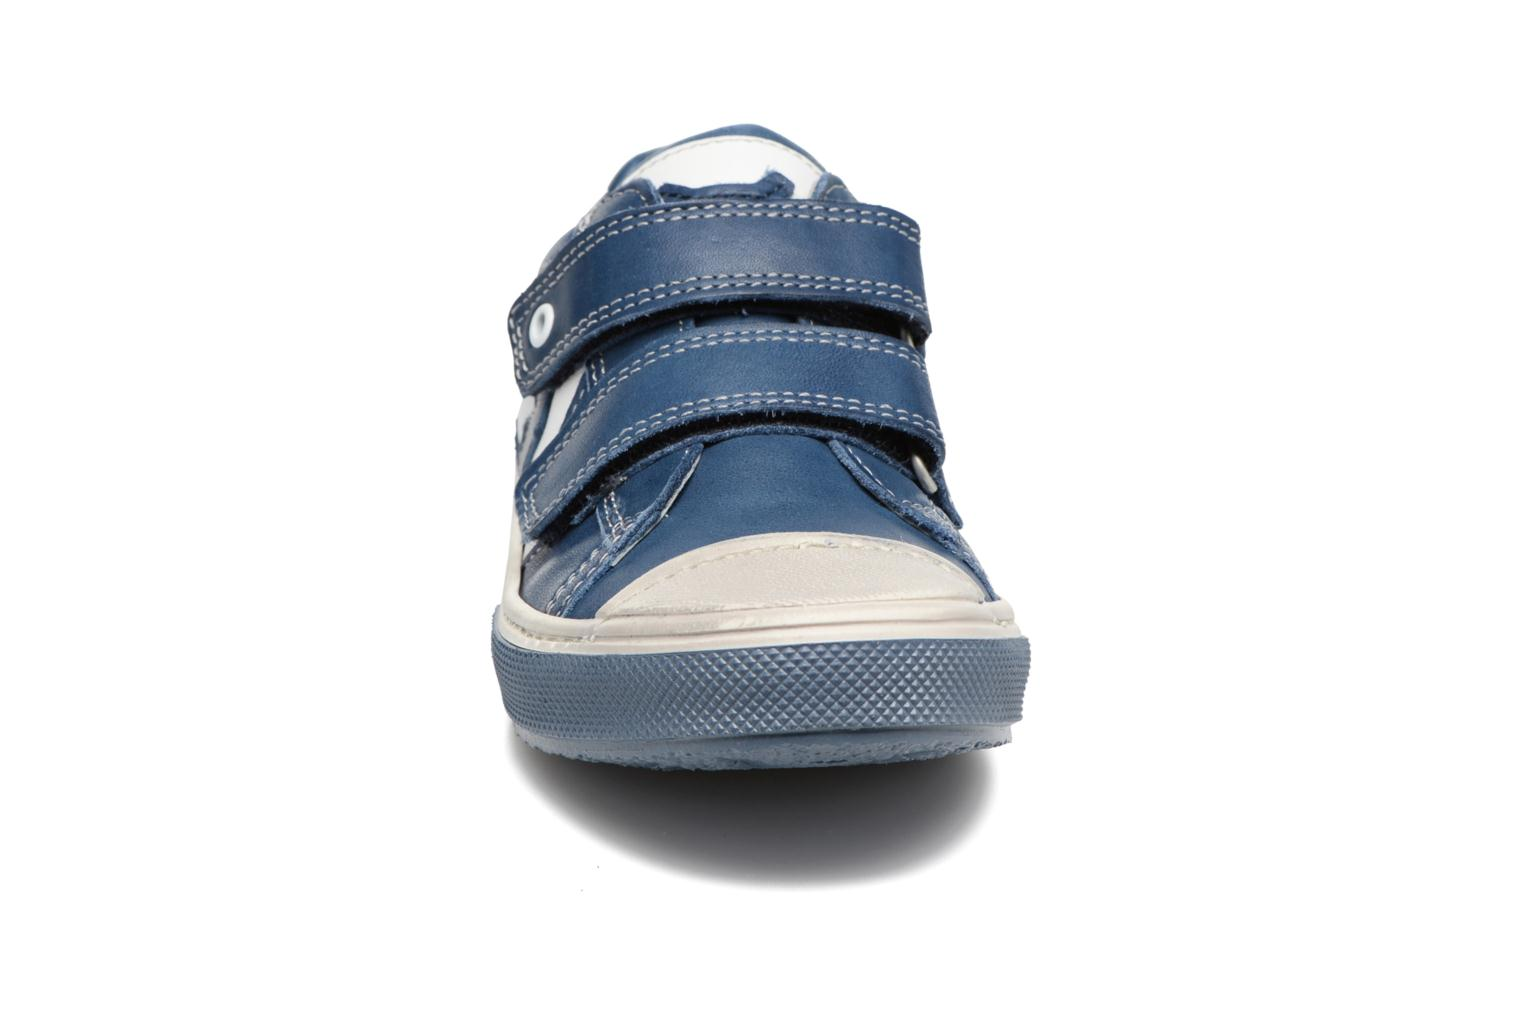 Chuck Vit blue + white